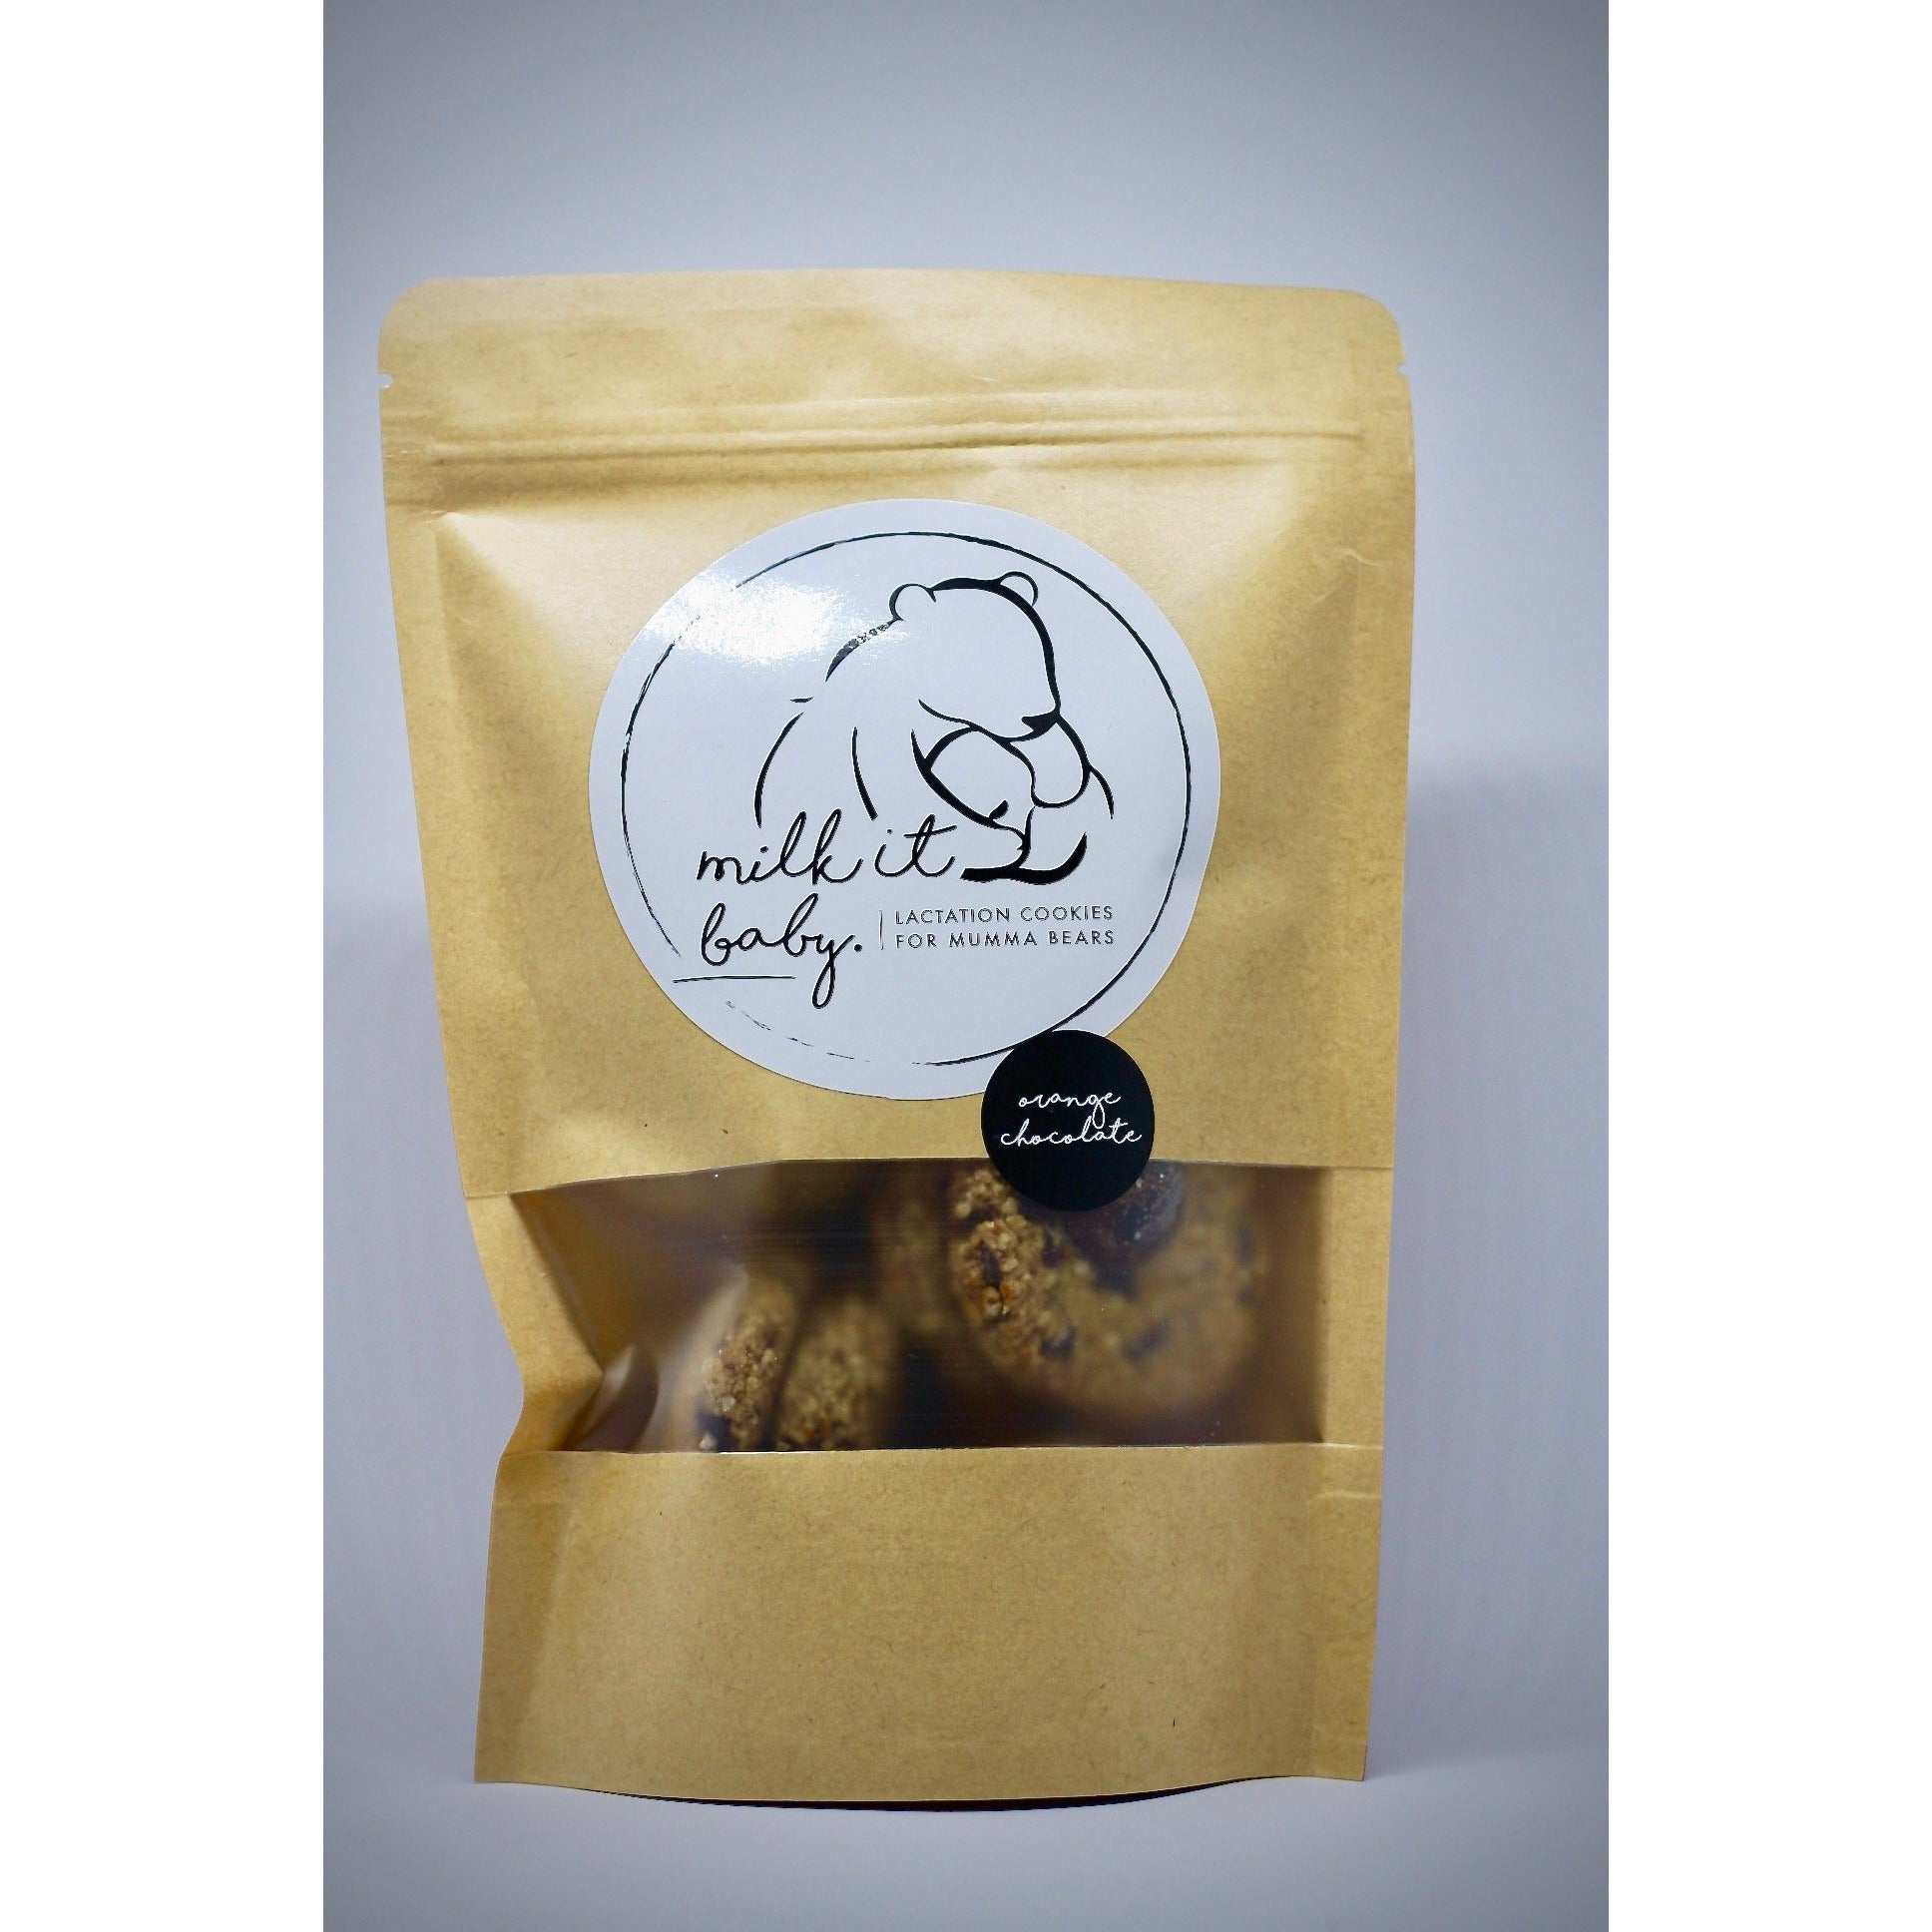 bag of lactation cookies